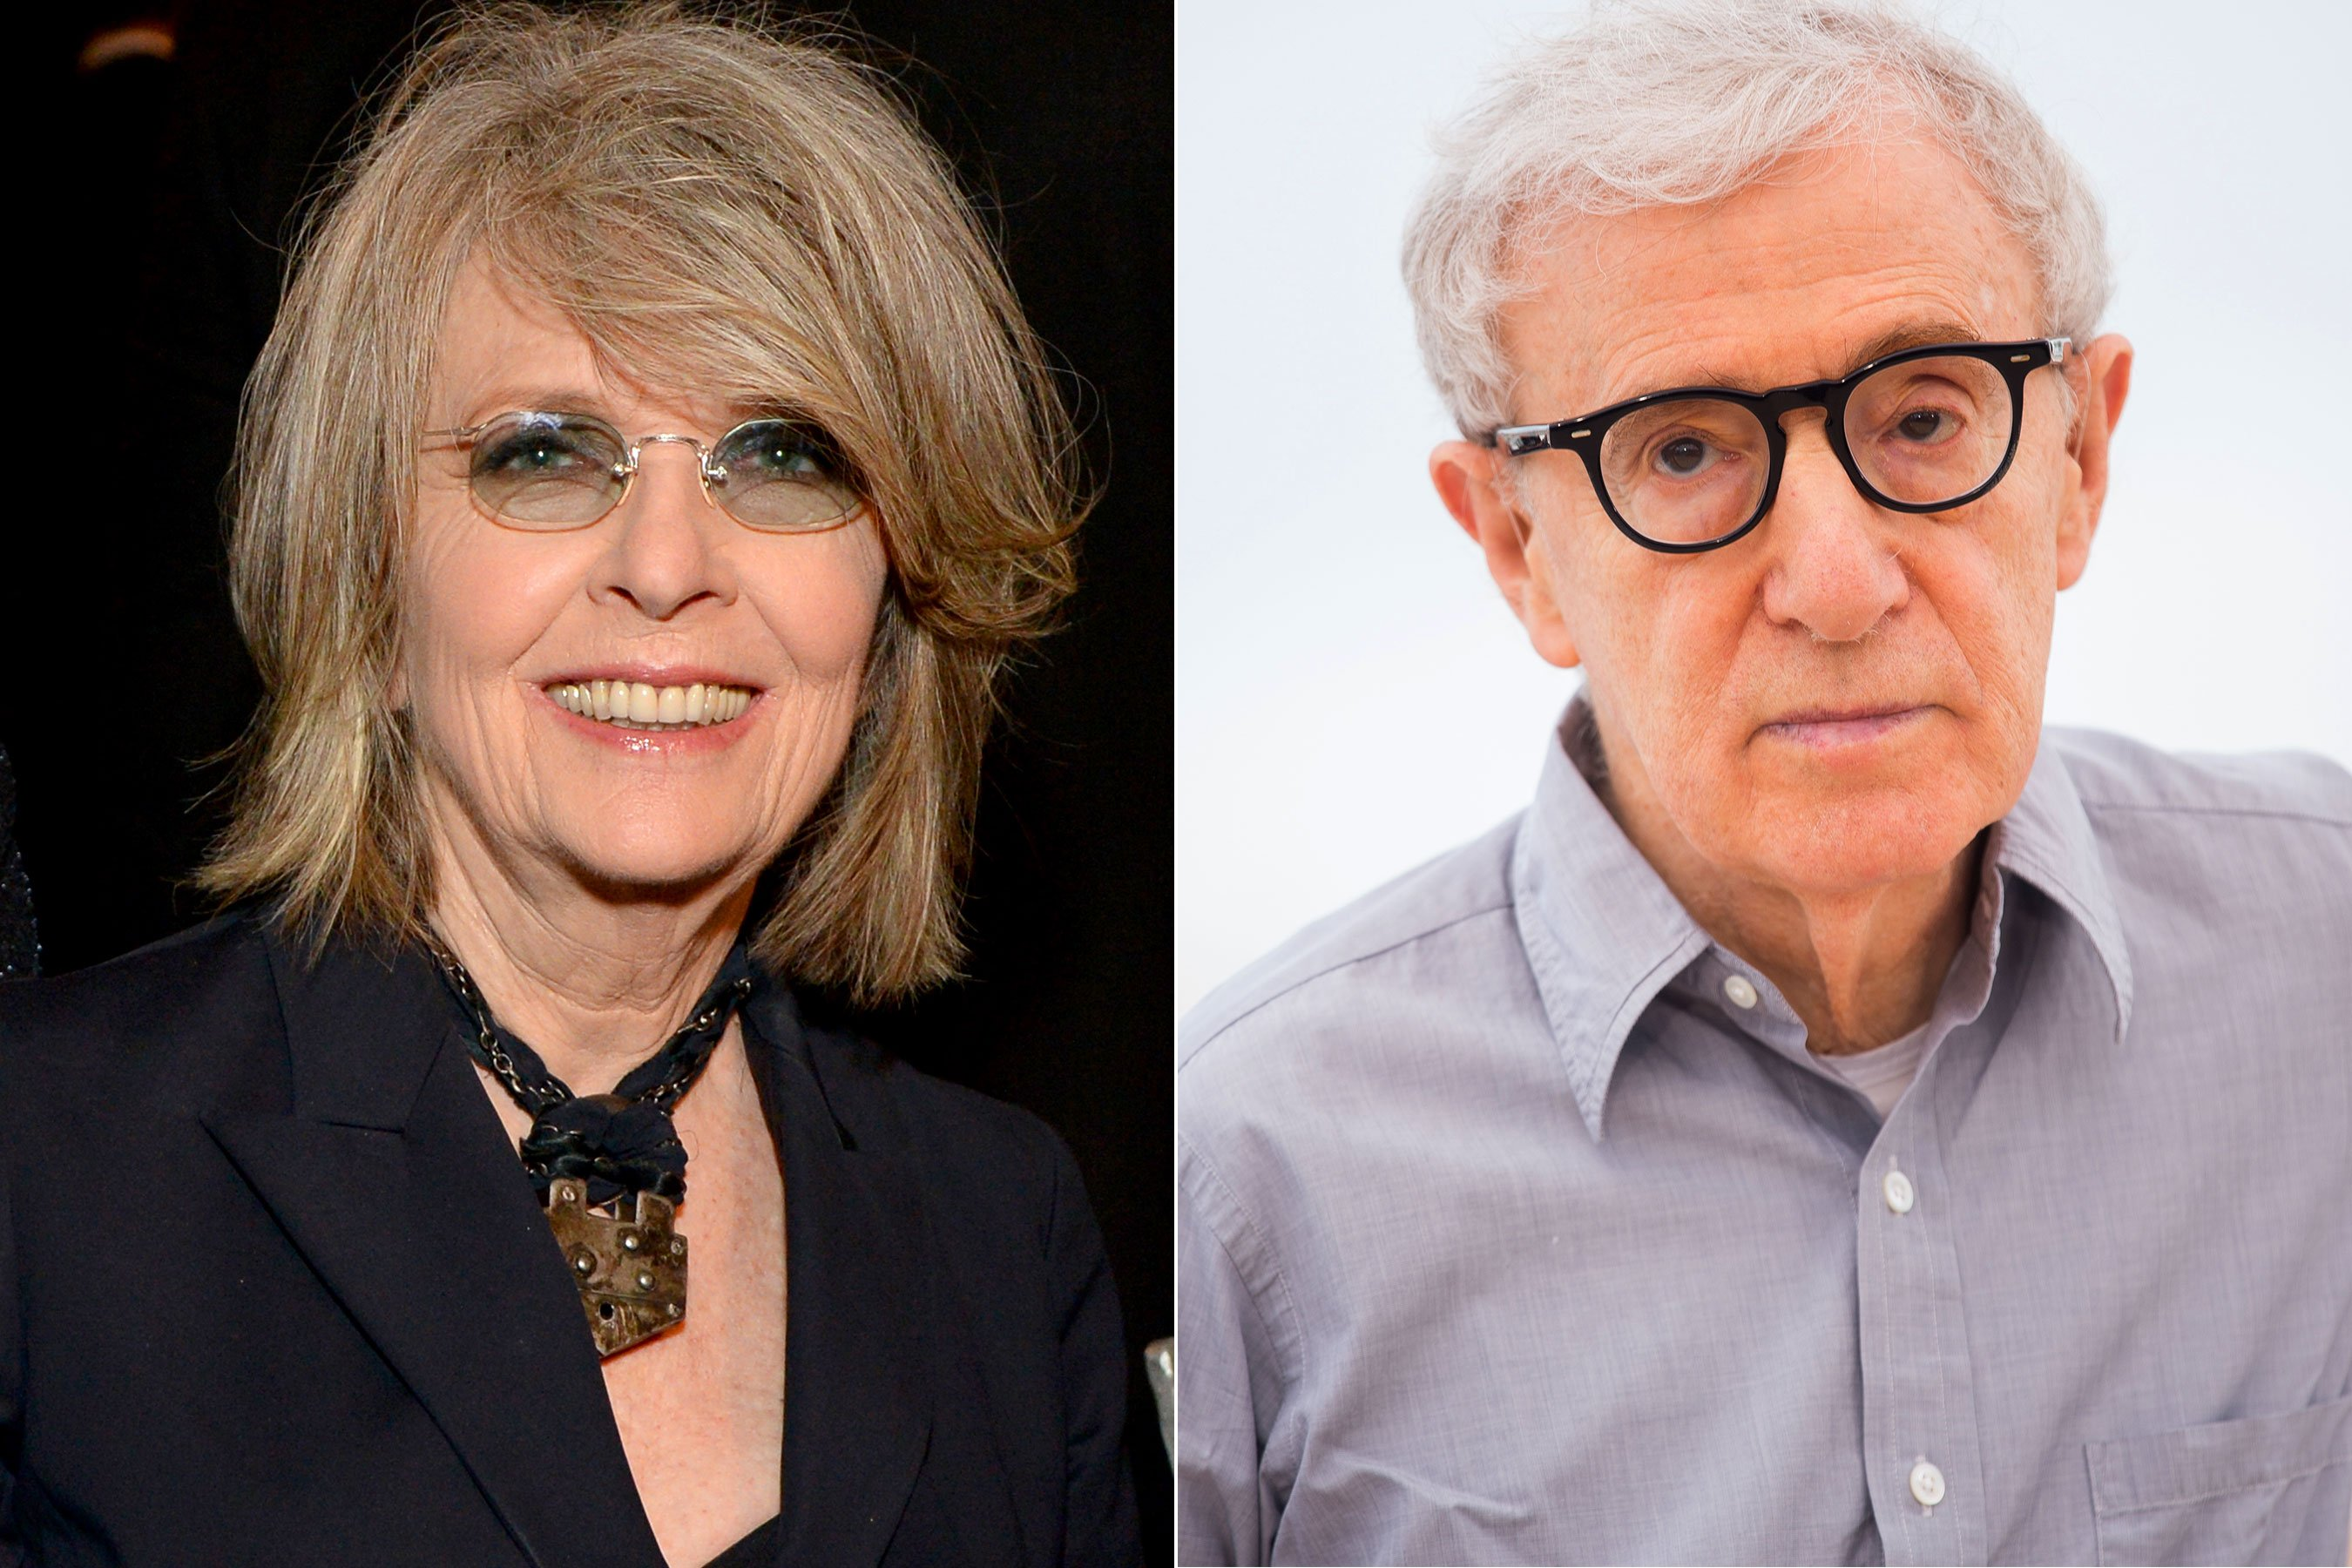 Diane Keaton stands by Woody Allen amid sexual abuse accusations